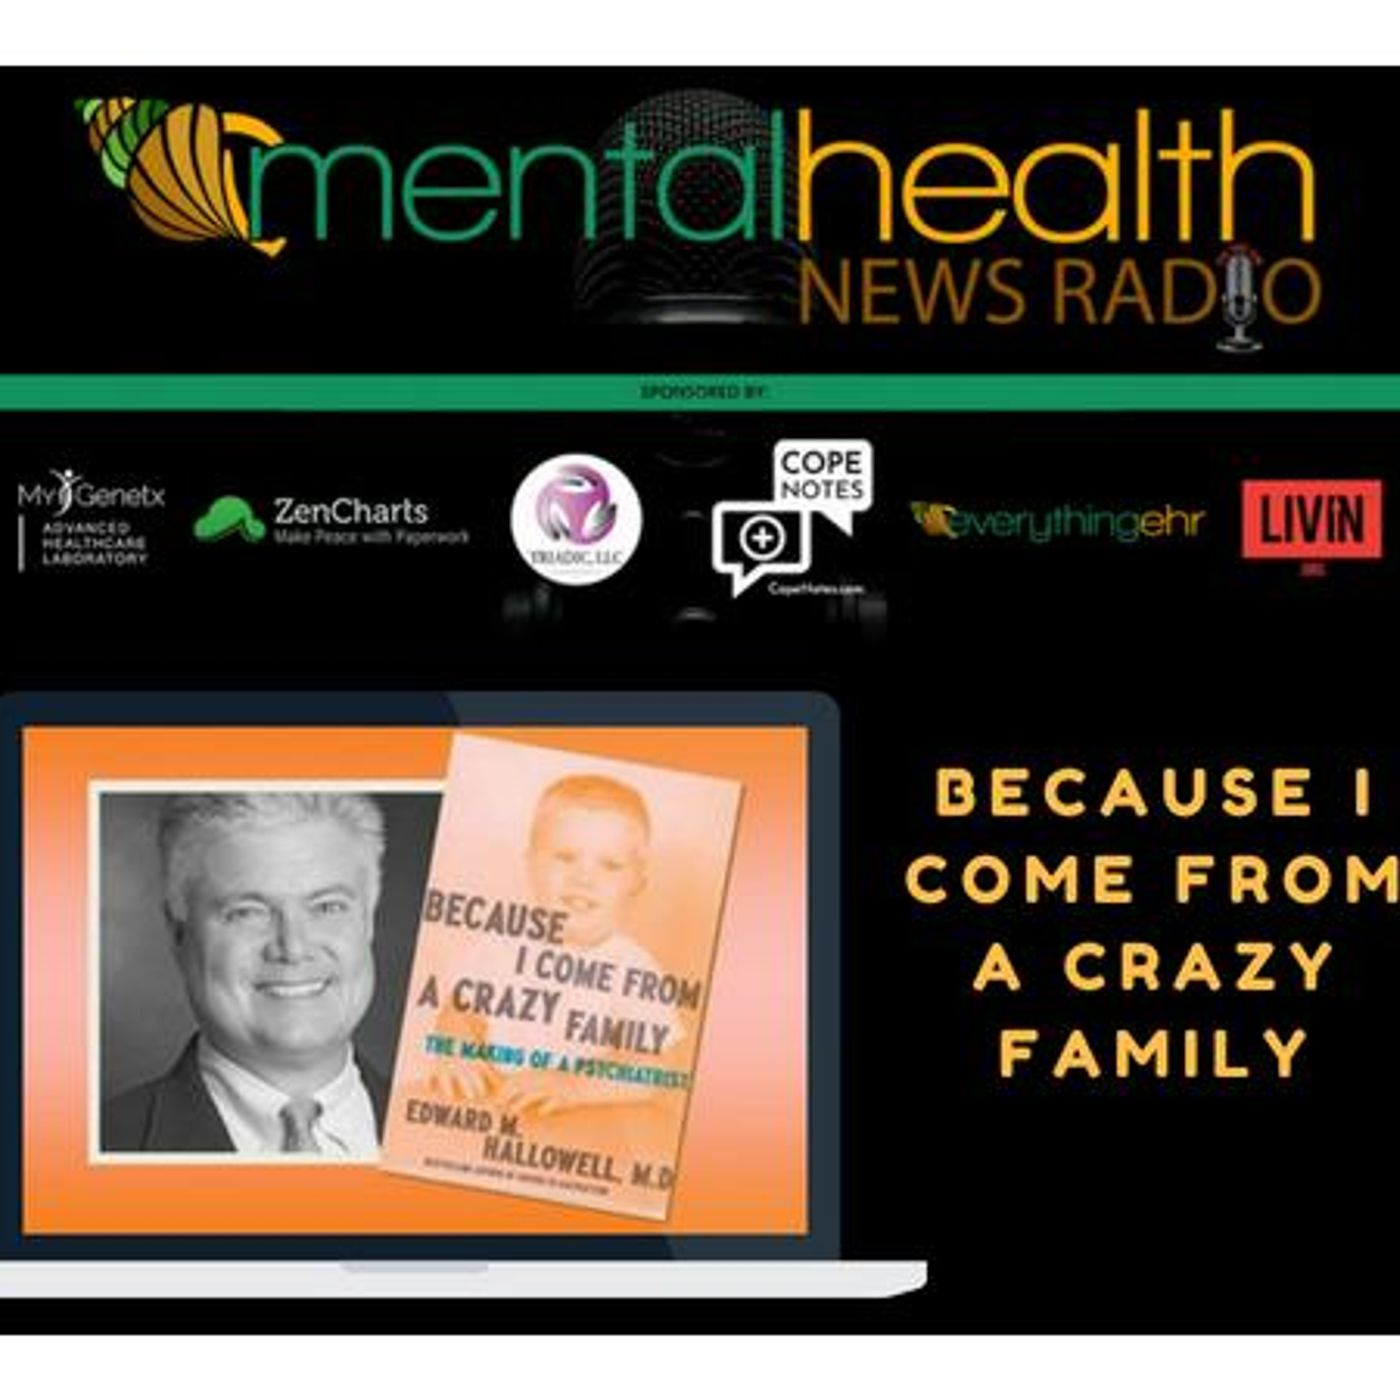 Mental Health News Radio - Because I Come From A Crazy Family: The Making Of A Psychiatrist